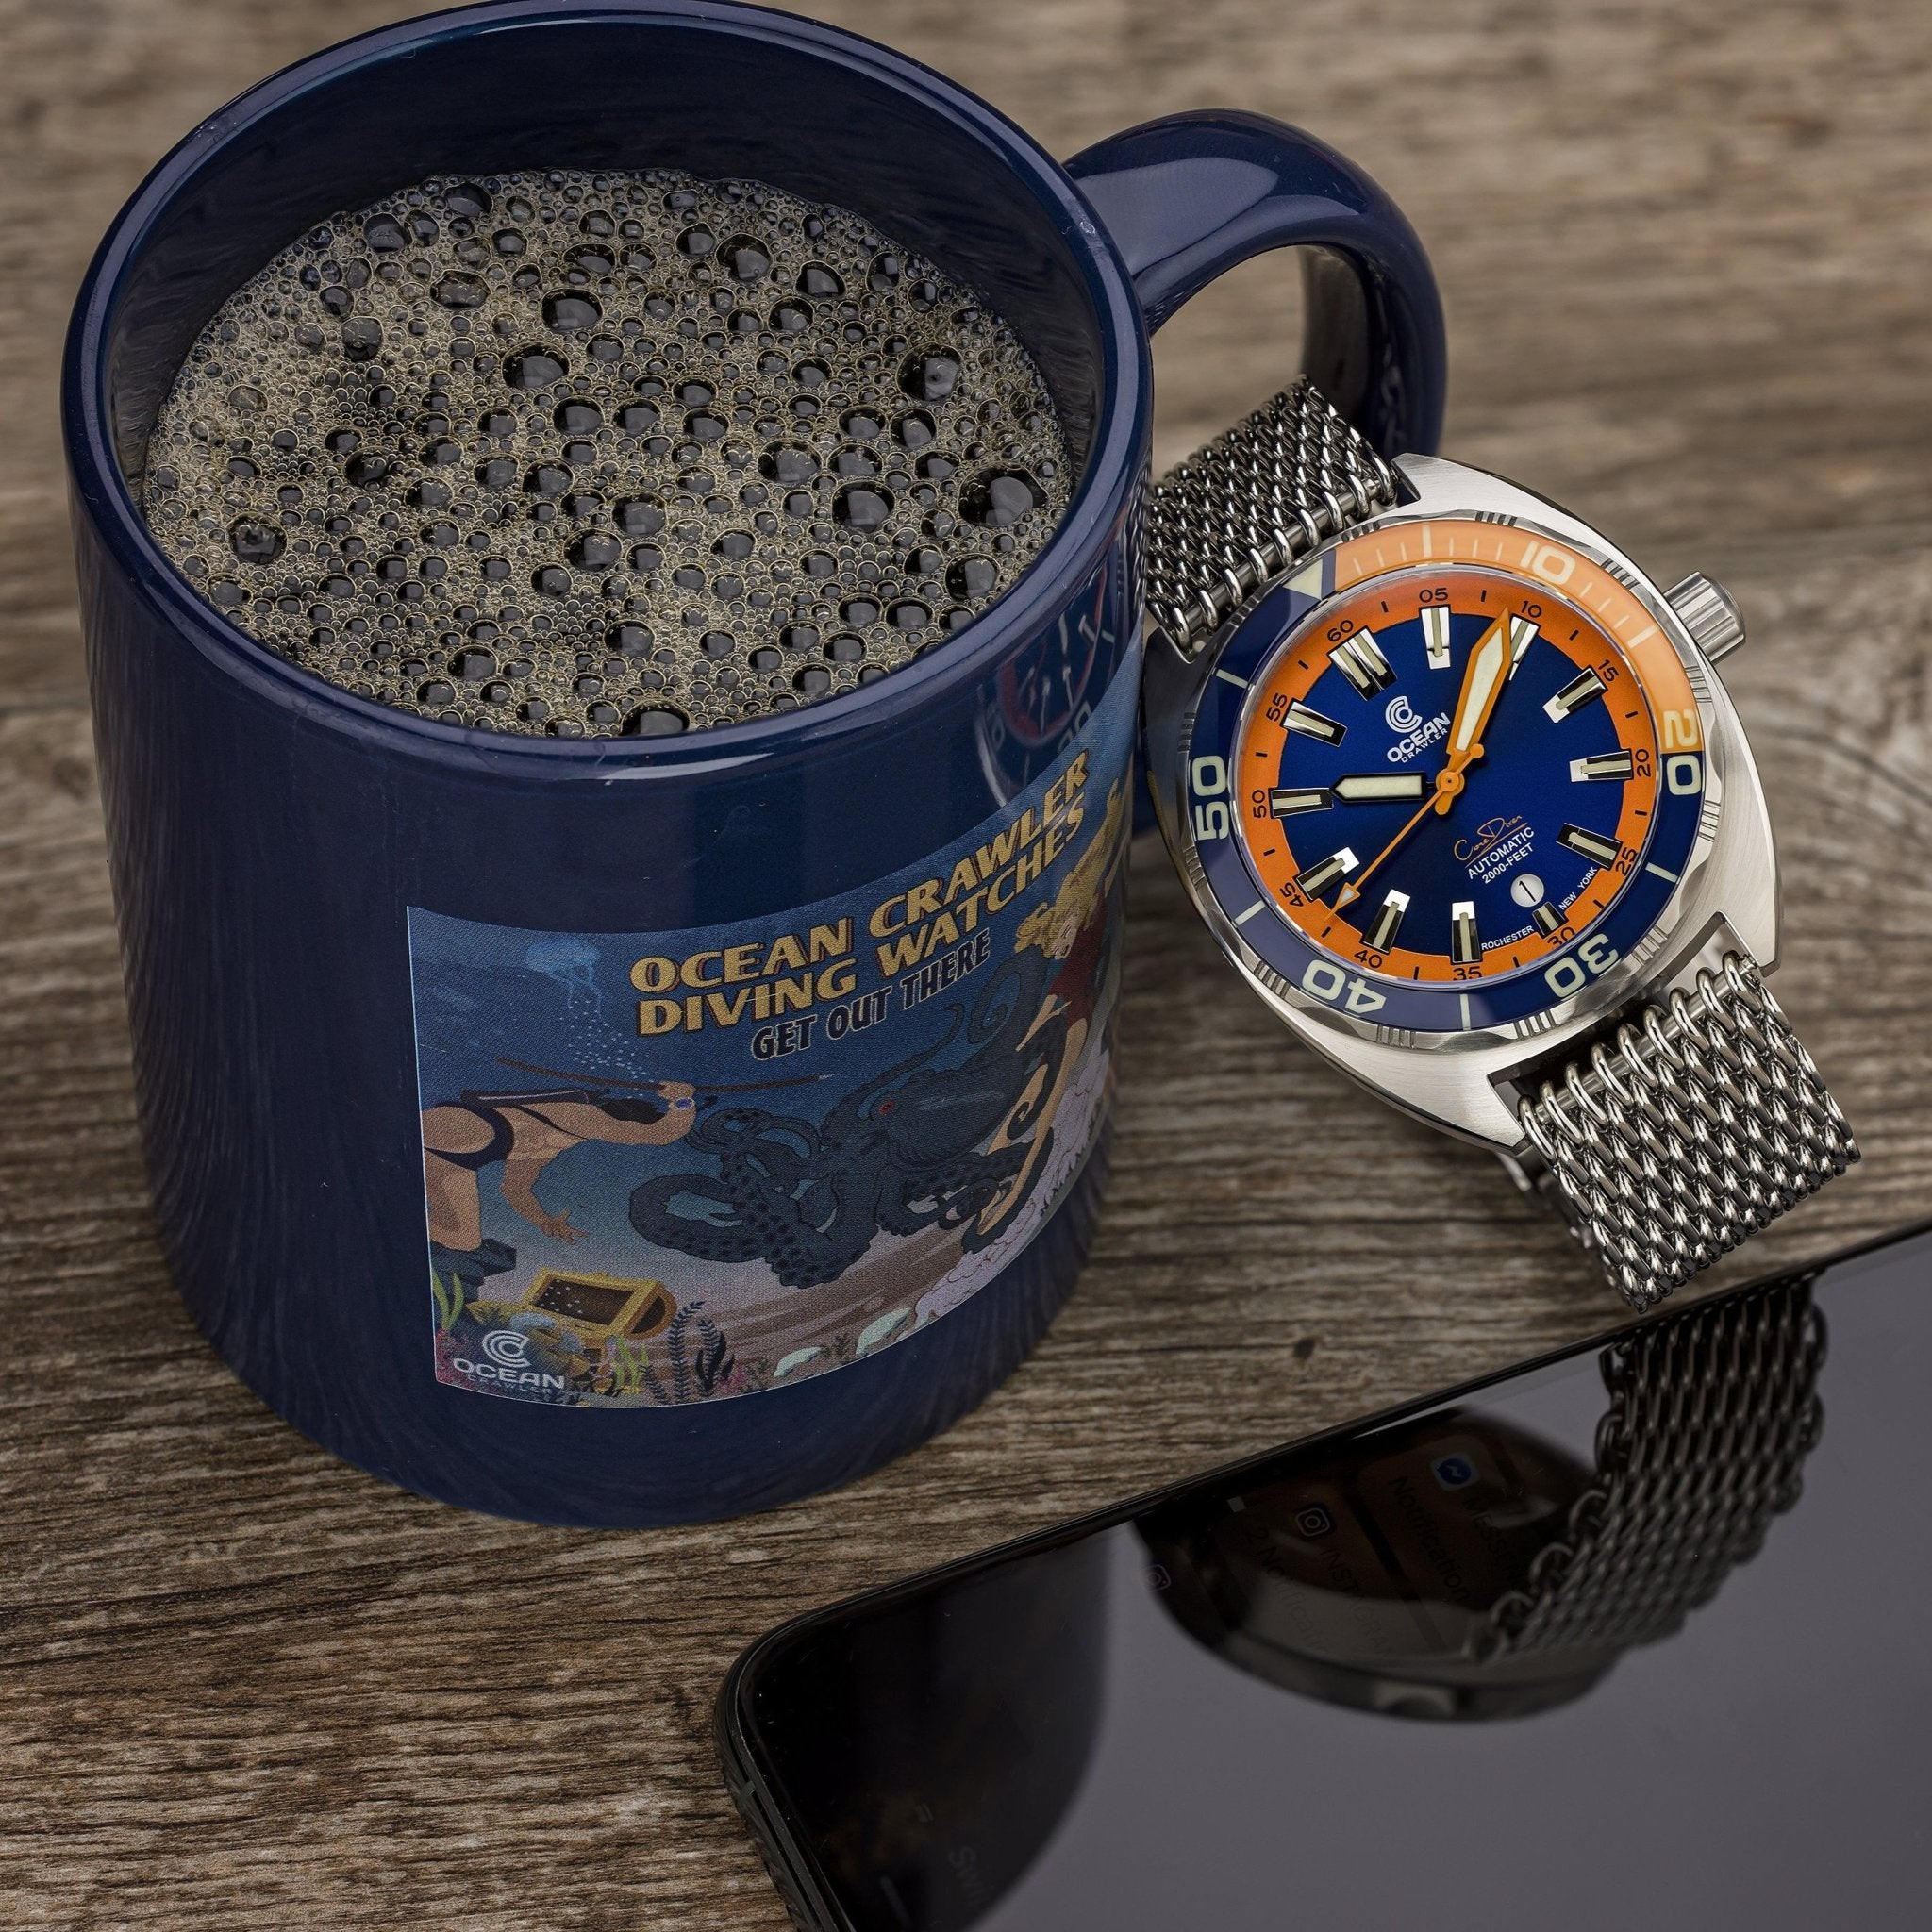 Ocean Crawler Coffee Mug - Ocean Crawler Watch Co.